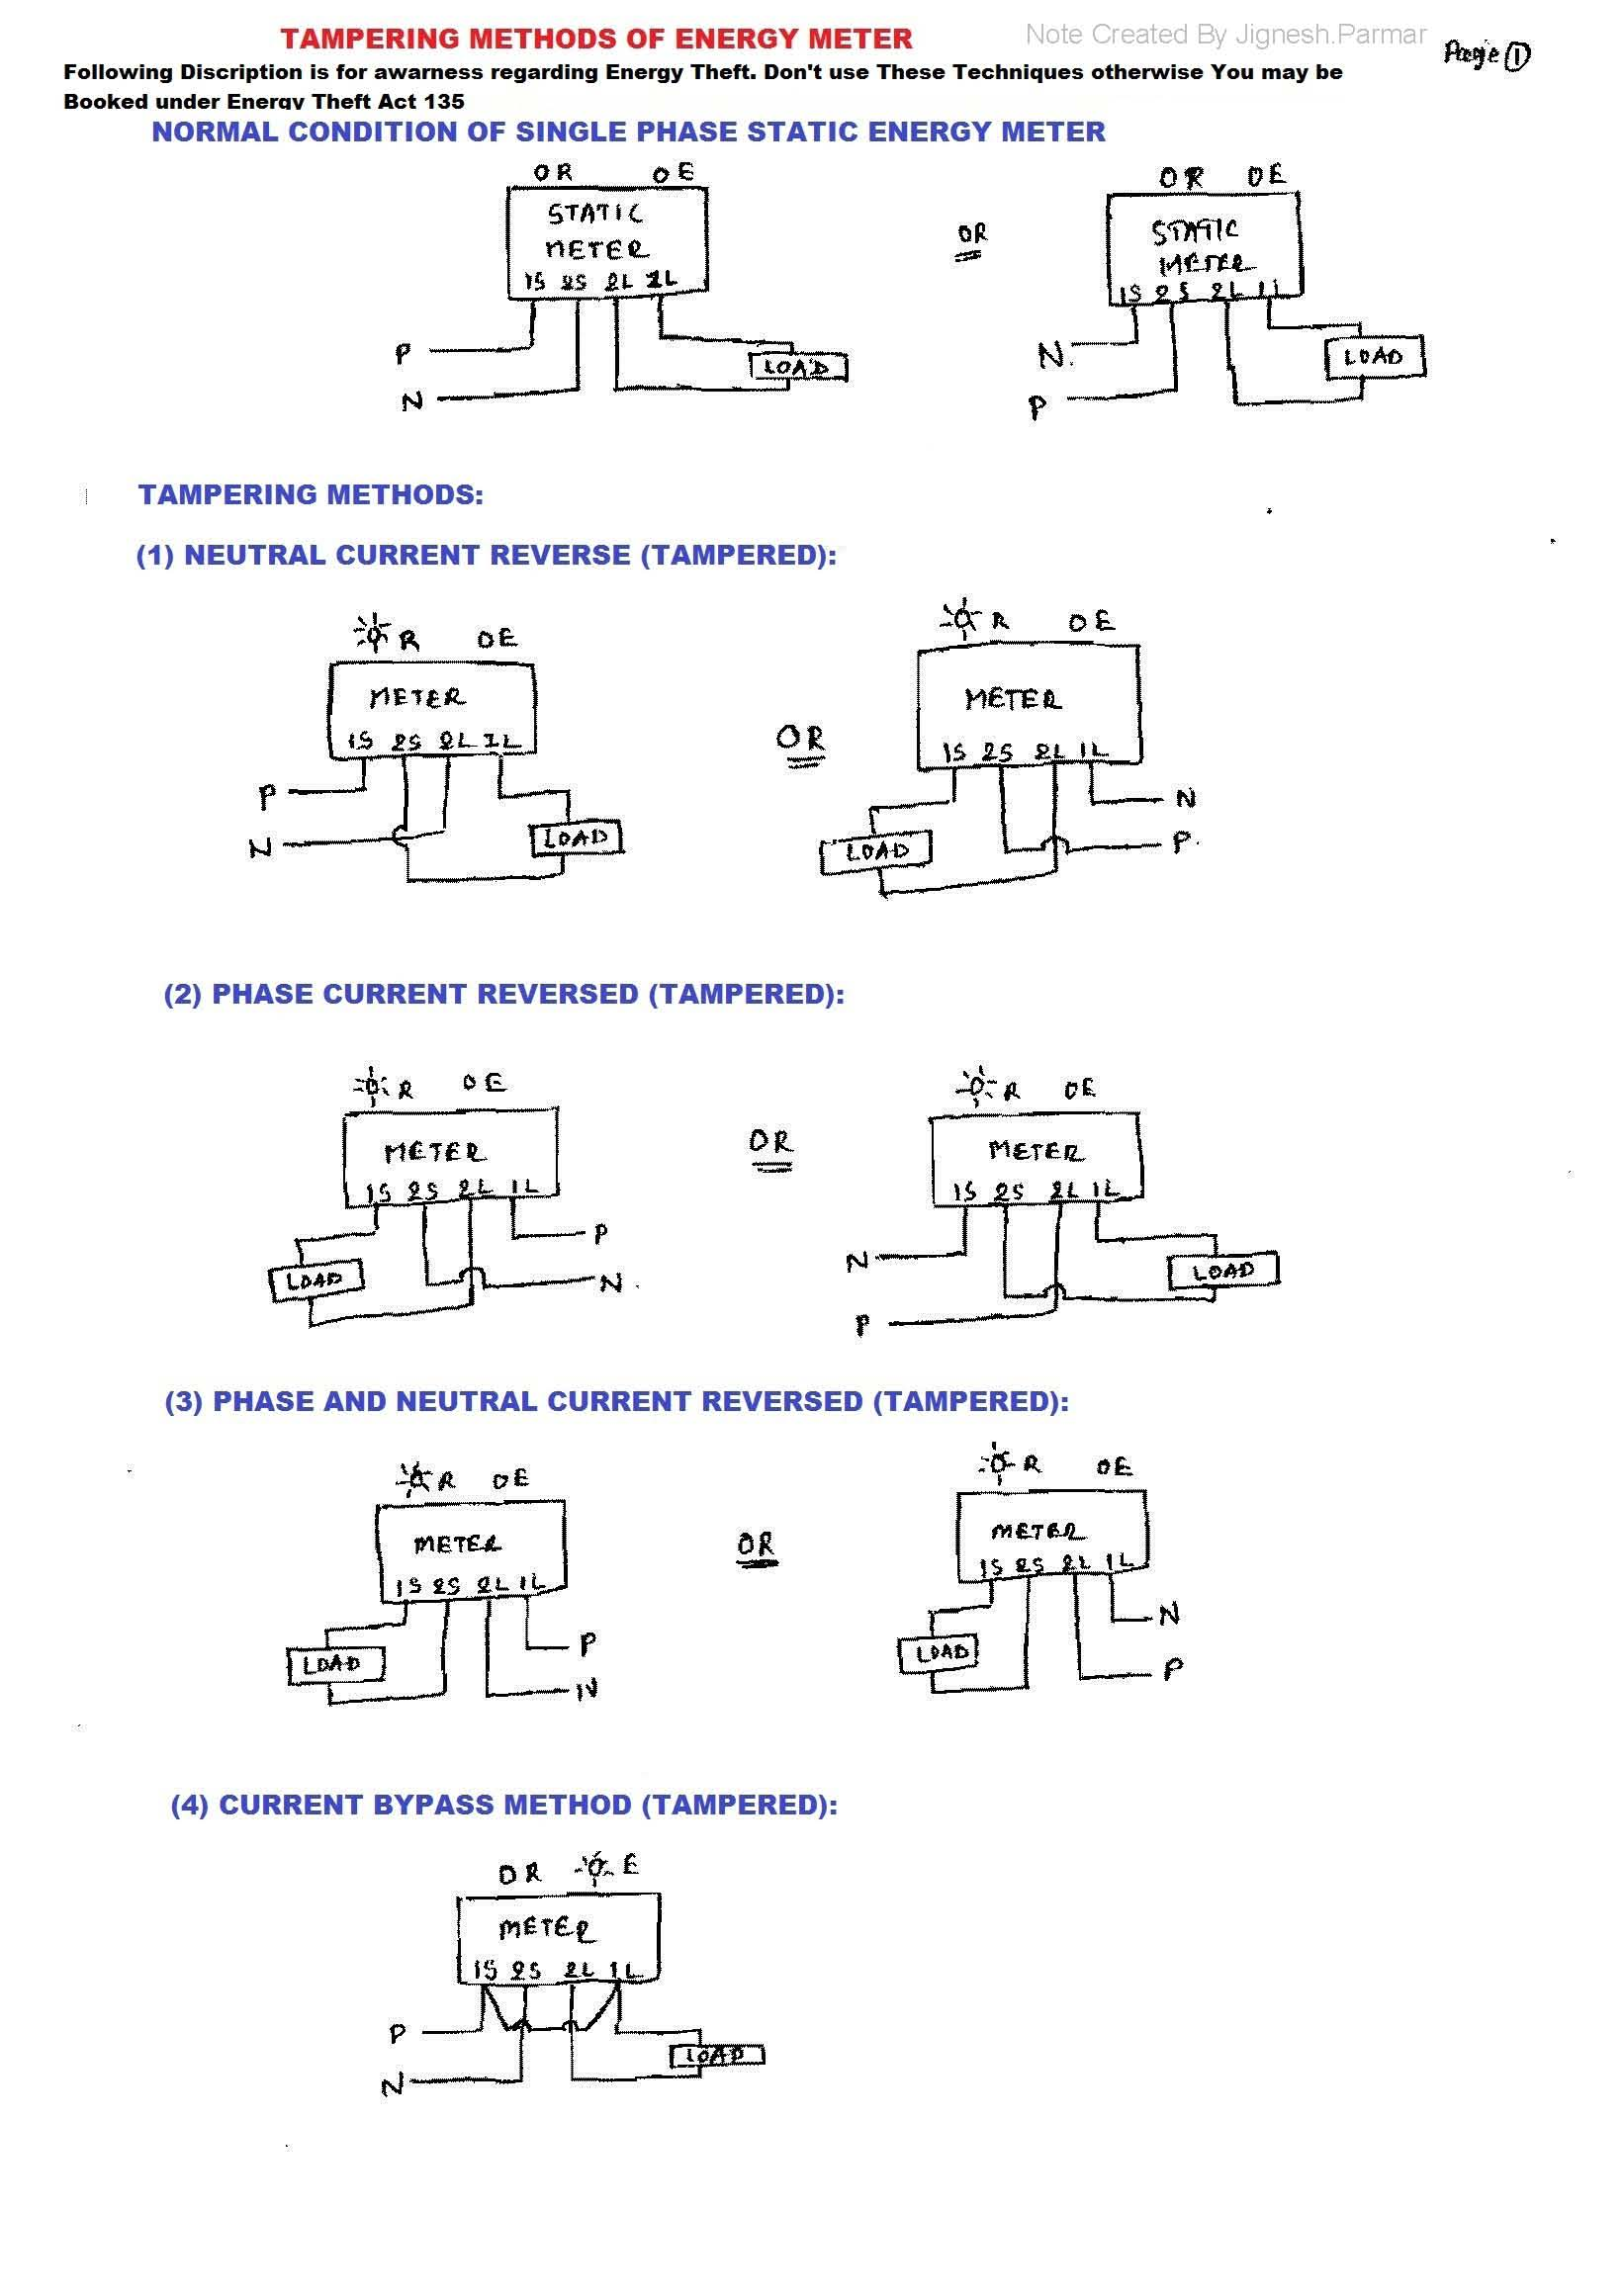 Nec Single Phase Meter Wiring Diagram | Wiring Diagram on 3 phase motor wiring connection, solar panel system diagram, 3 phase electrical wiring, electric meter installation diagram, 3 phase ct connection diagram, 3 phase wiring for dummies, 3 phase meter socket, wye open delta transformer connection diagram, home brewing setup diagram, double phase electrical diagram, 3 phase motor control diagrams, 3 phase 208v wiring-diagram, 3 phase electrical installation, 3 phase power diagram, 3 phase wiring chart, 3 phase transformer connection diagram, 2 phase 5 wire diagram, 3 phase meter box,